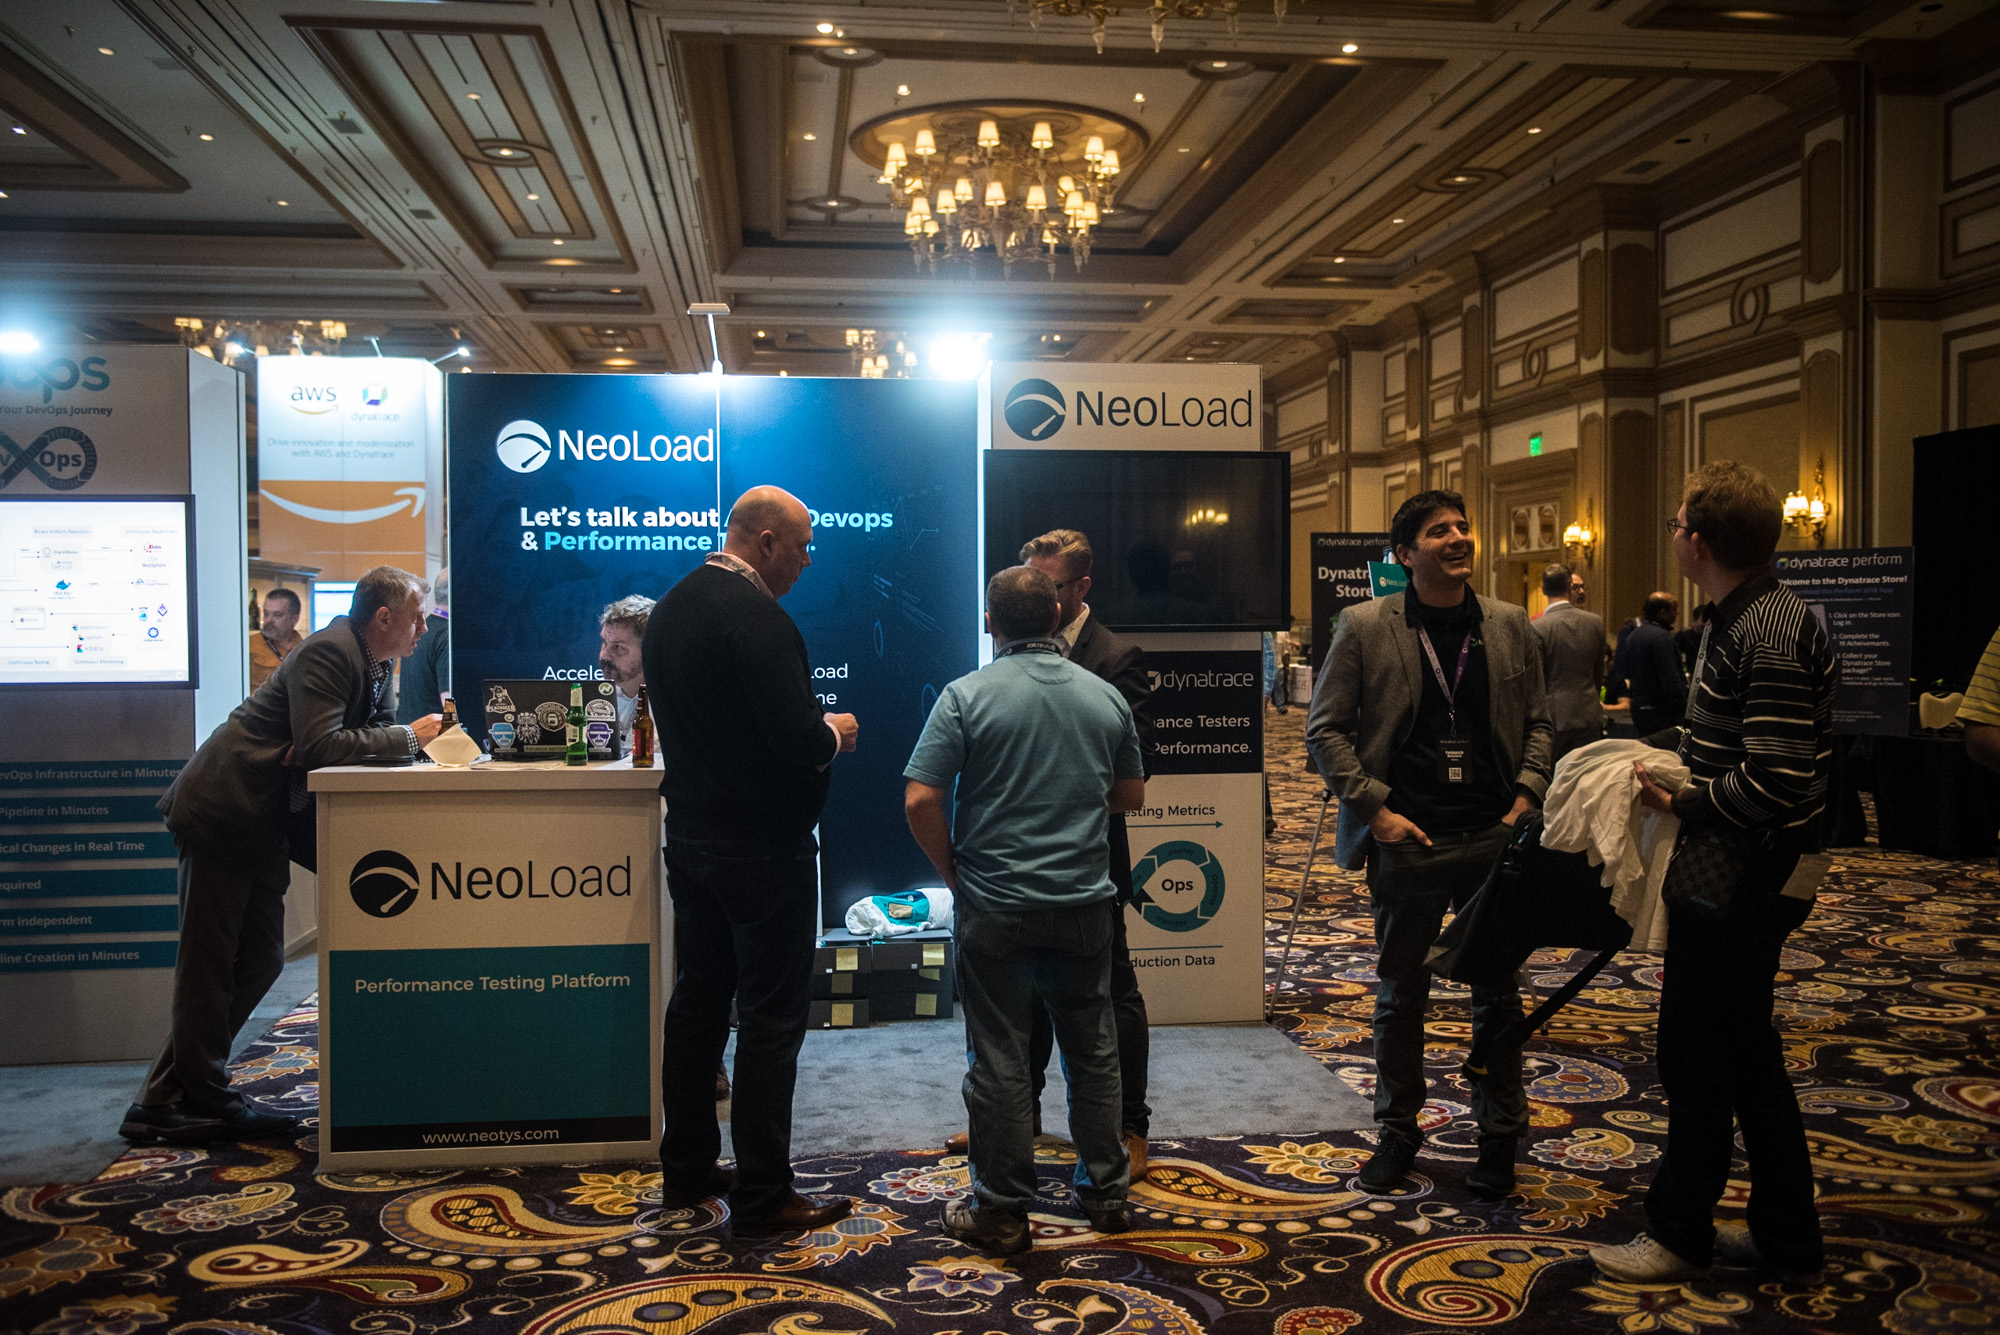 NeoLoad booth at perform 2018